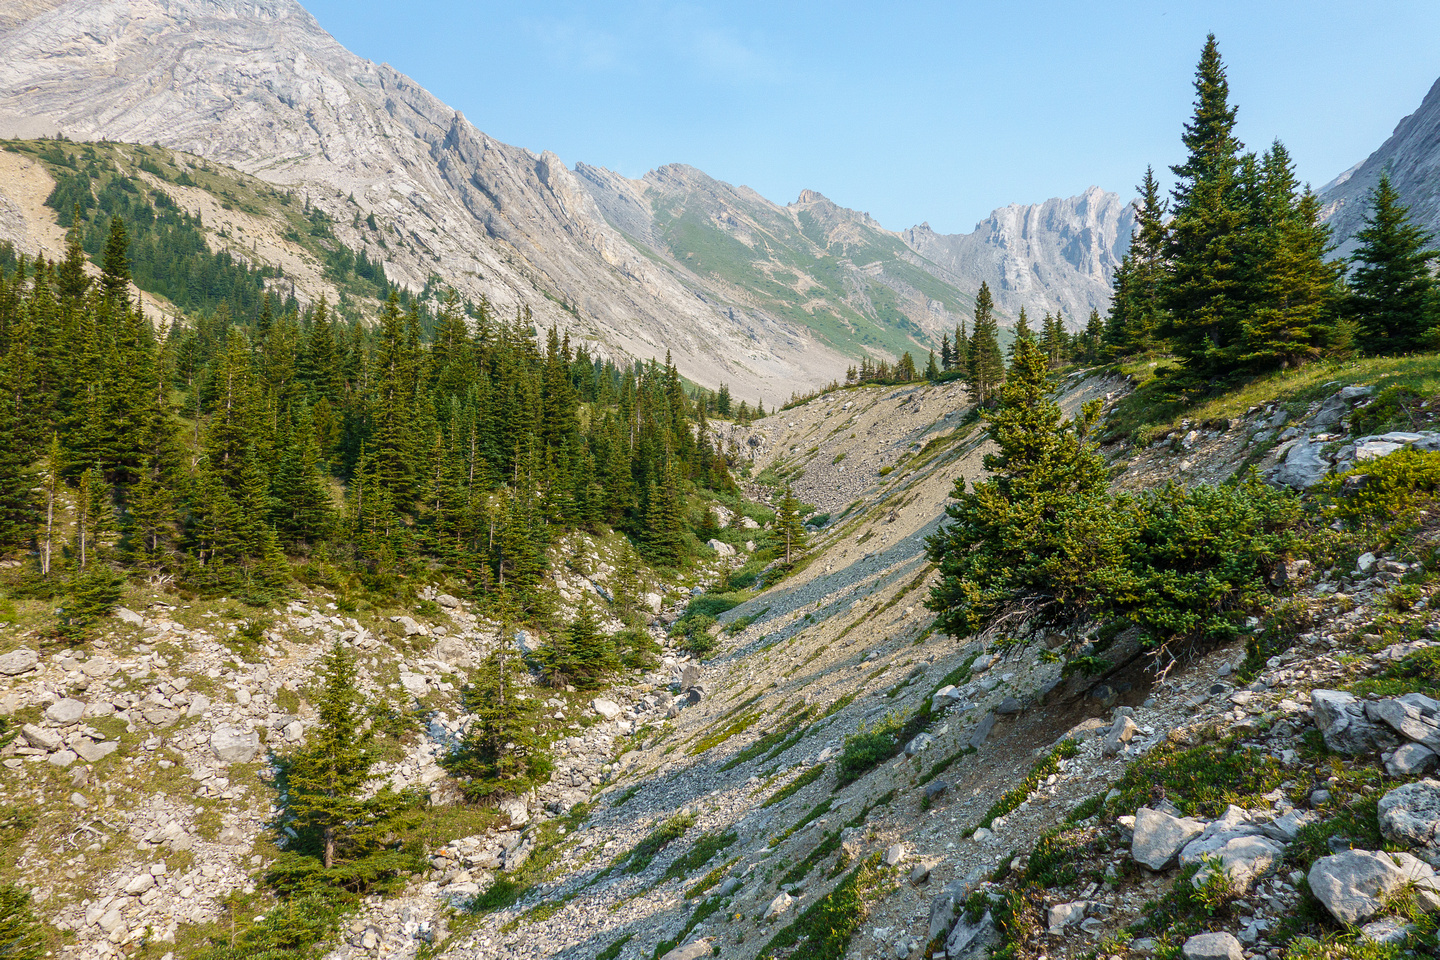 Hiking up the north branch of the upper access creek.